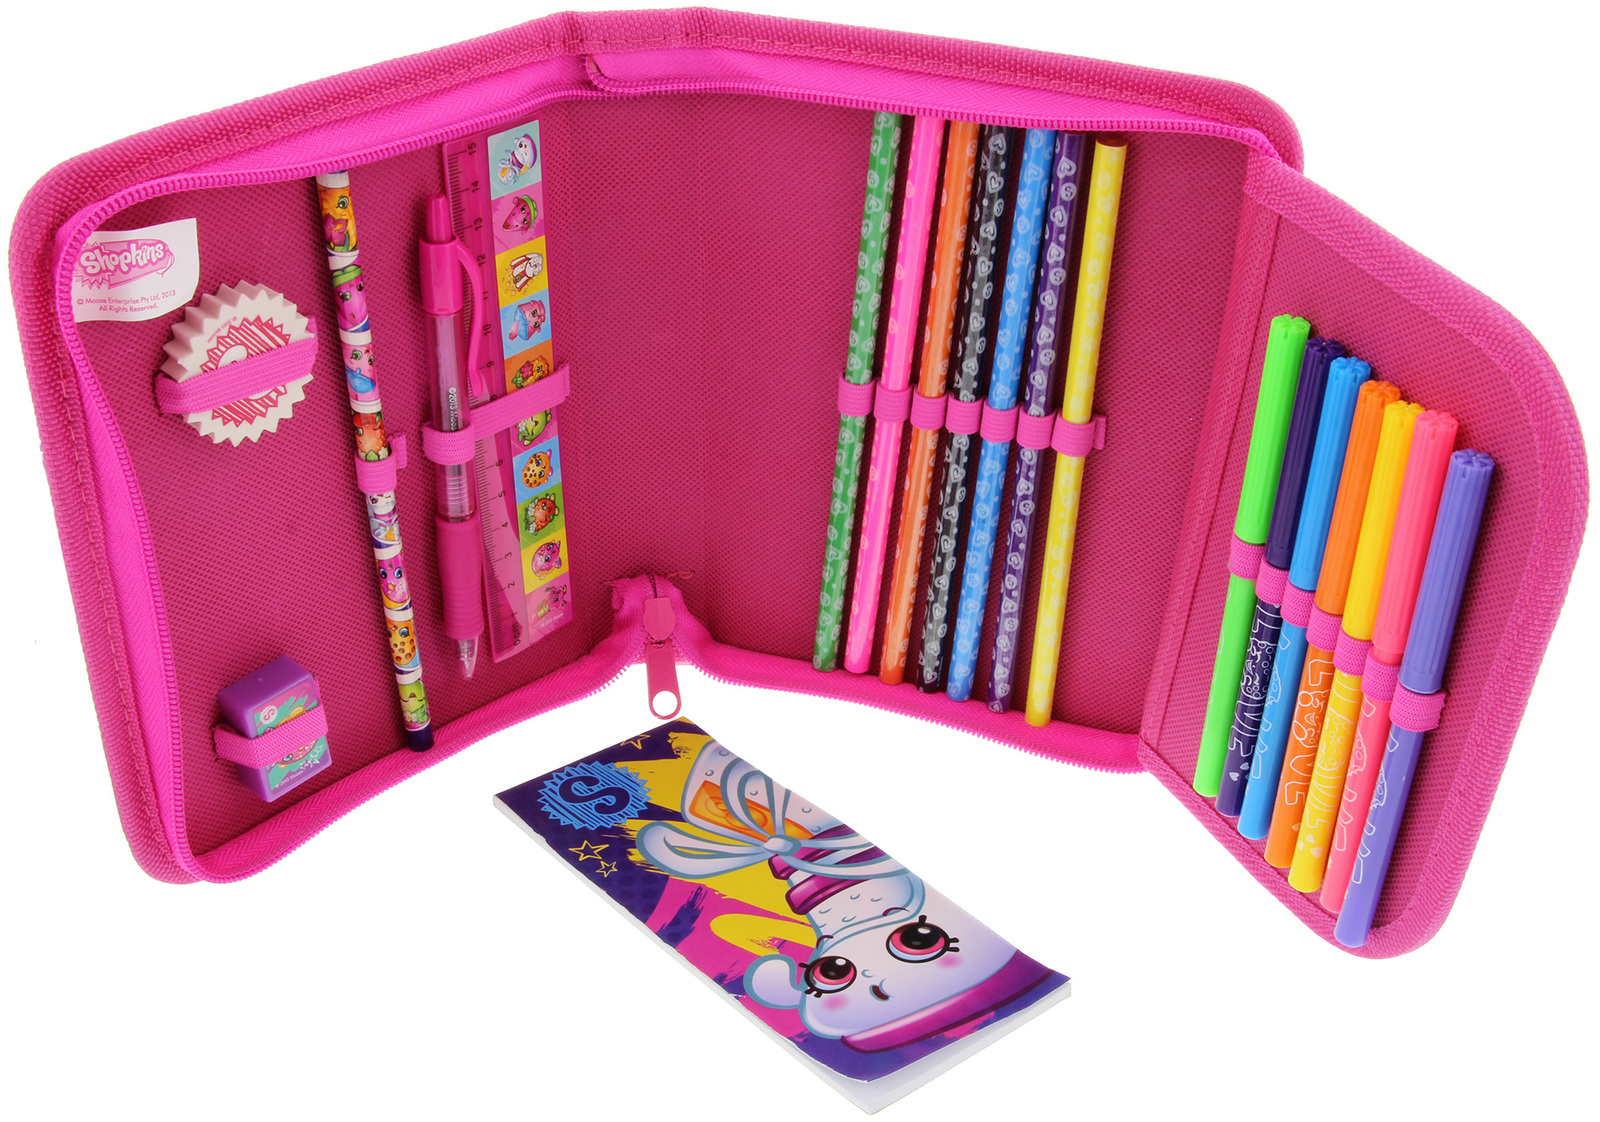 Shopkins: Filled Pencil Case image